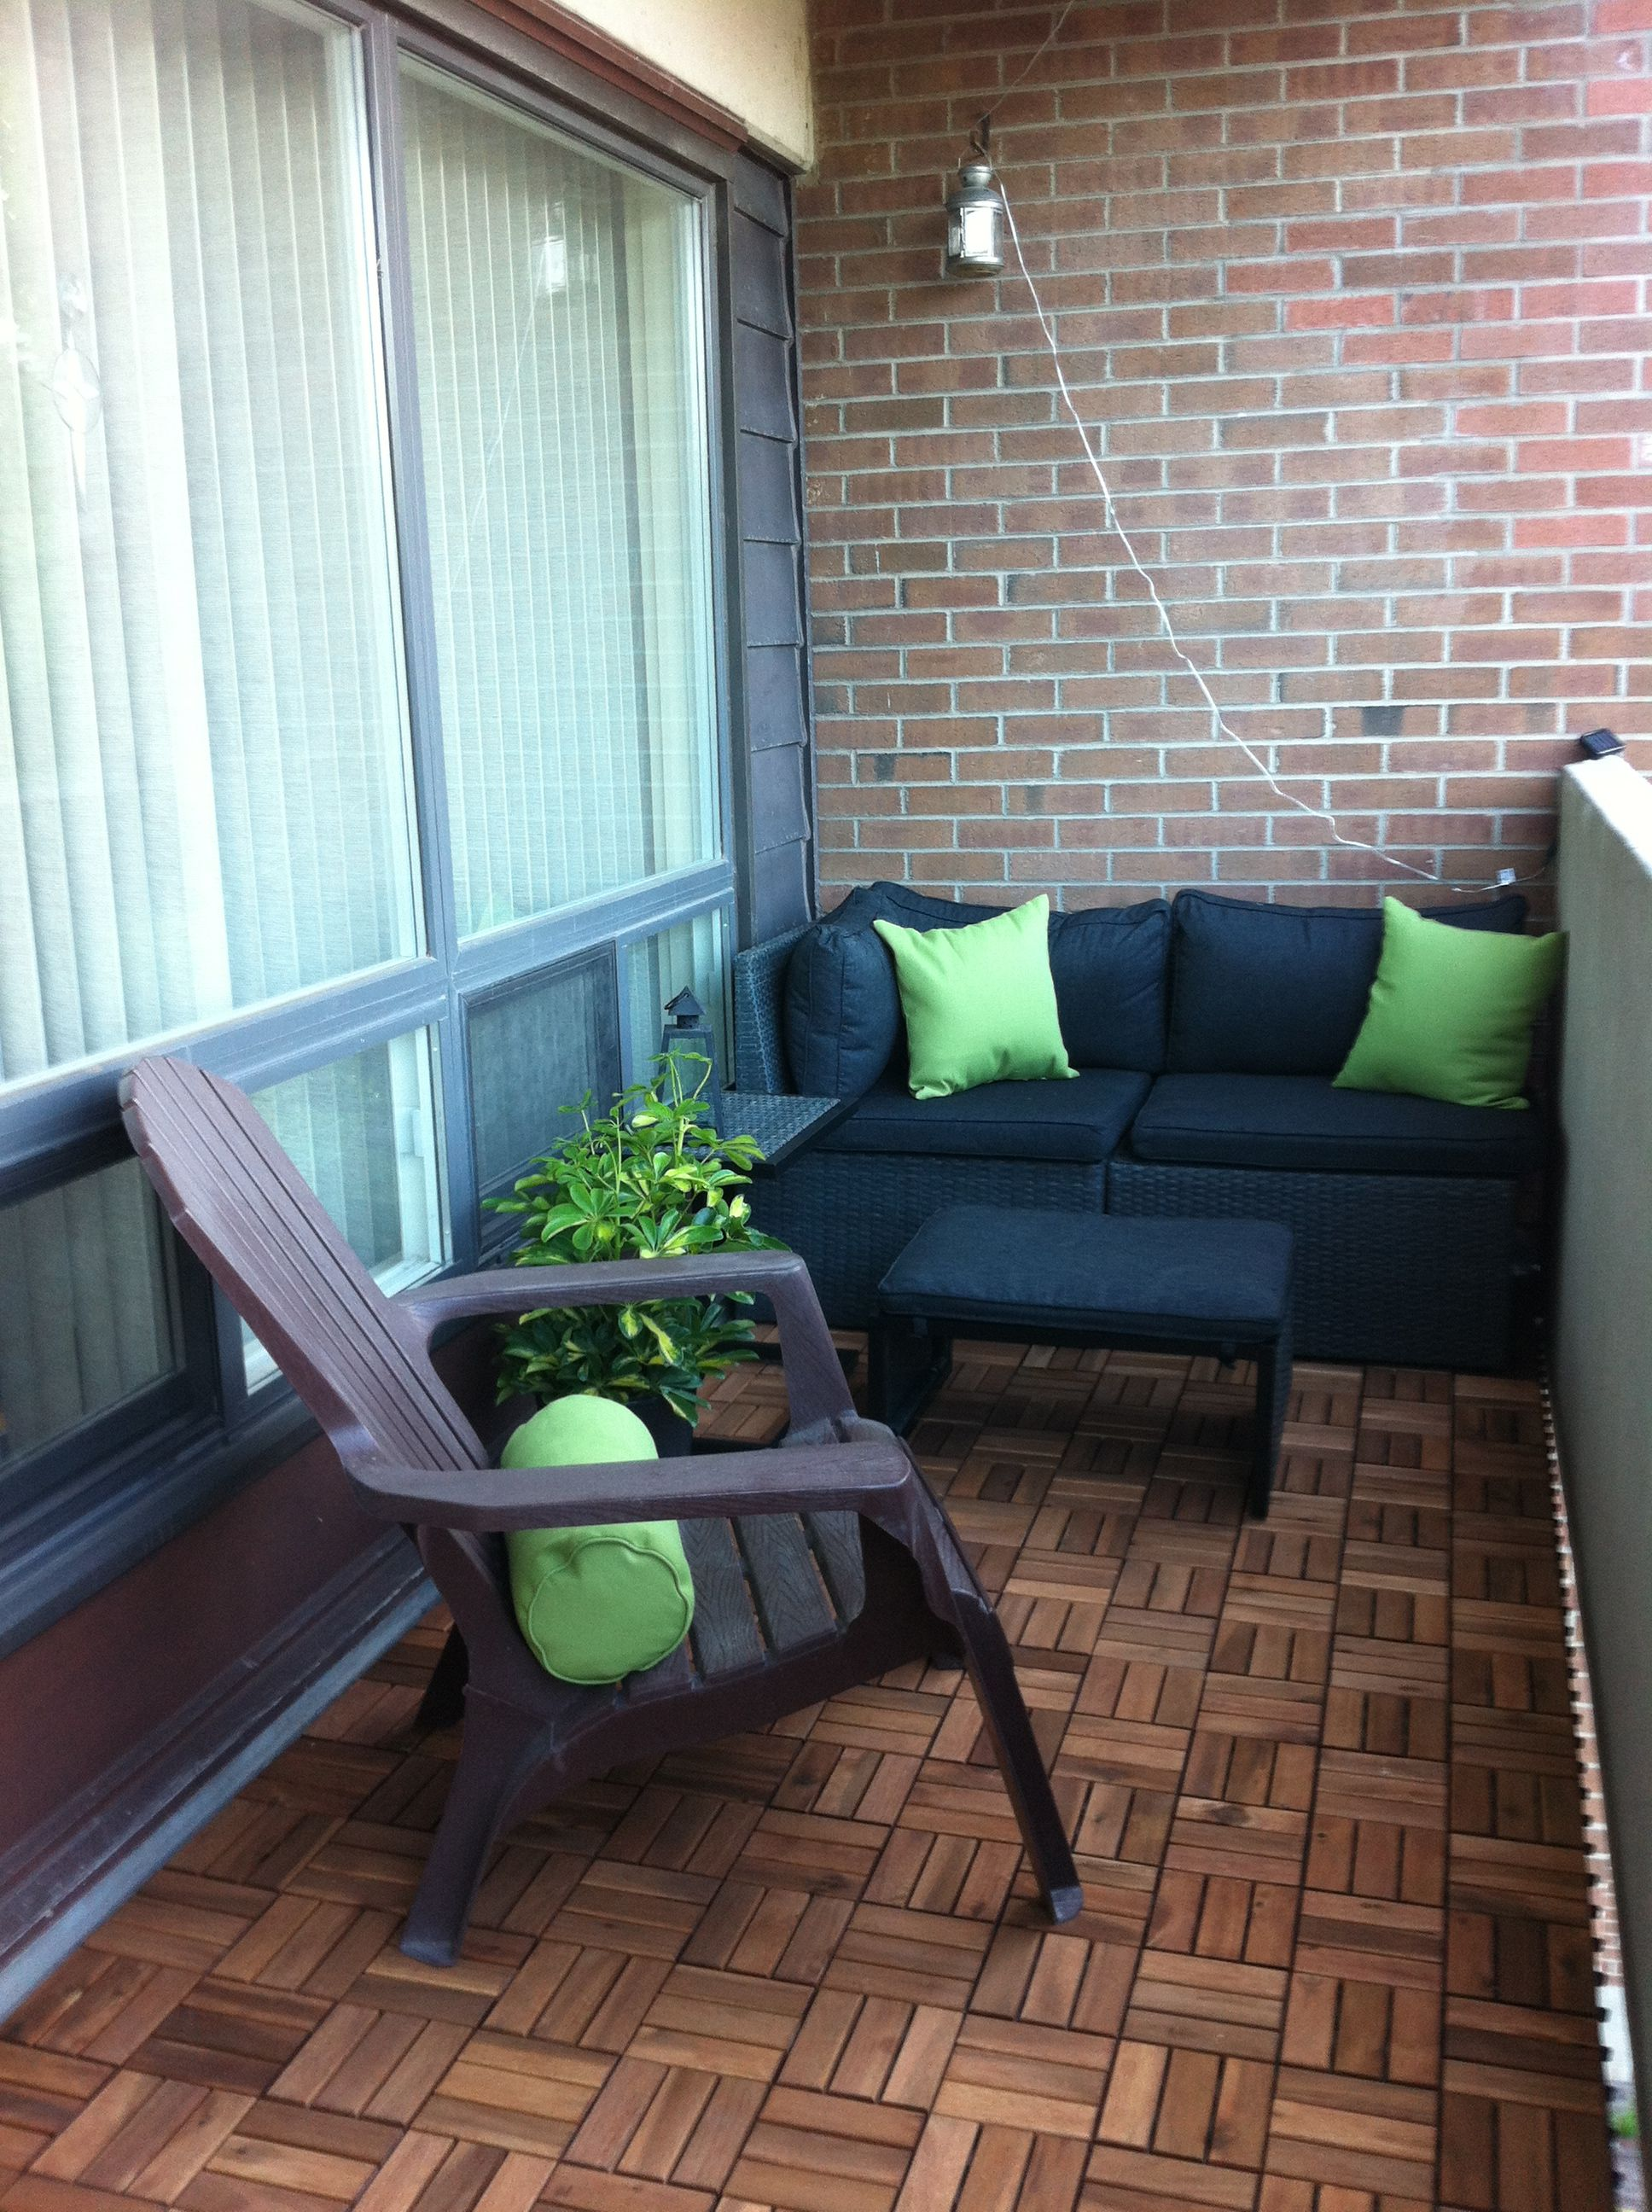 Small Comfort Room Tiles Design: Small Balcony With Style. Floor Was Done With Wood Deck